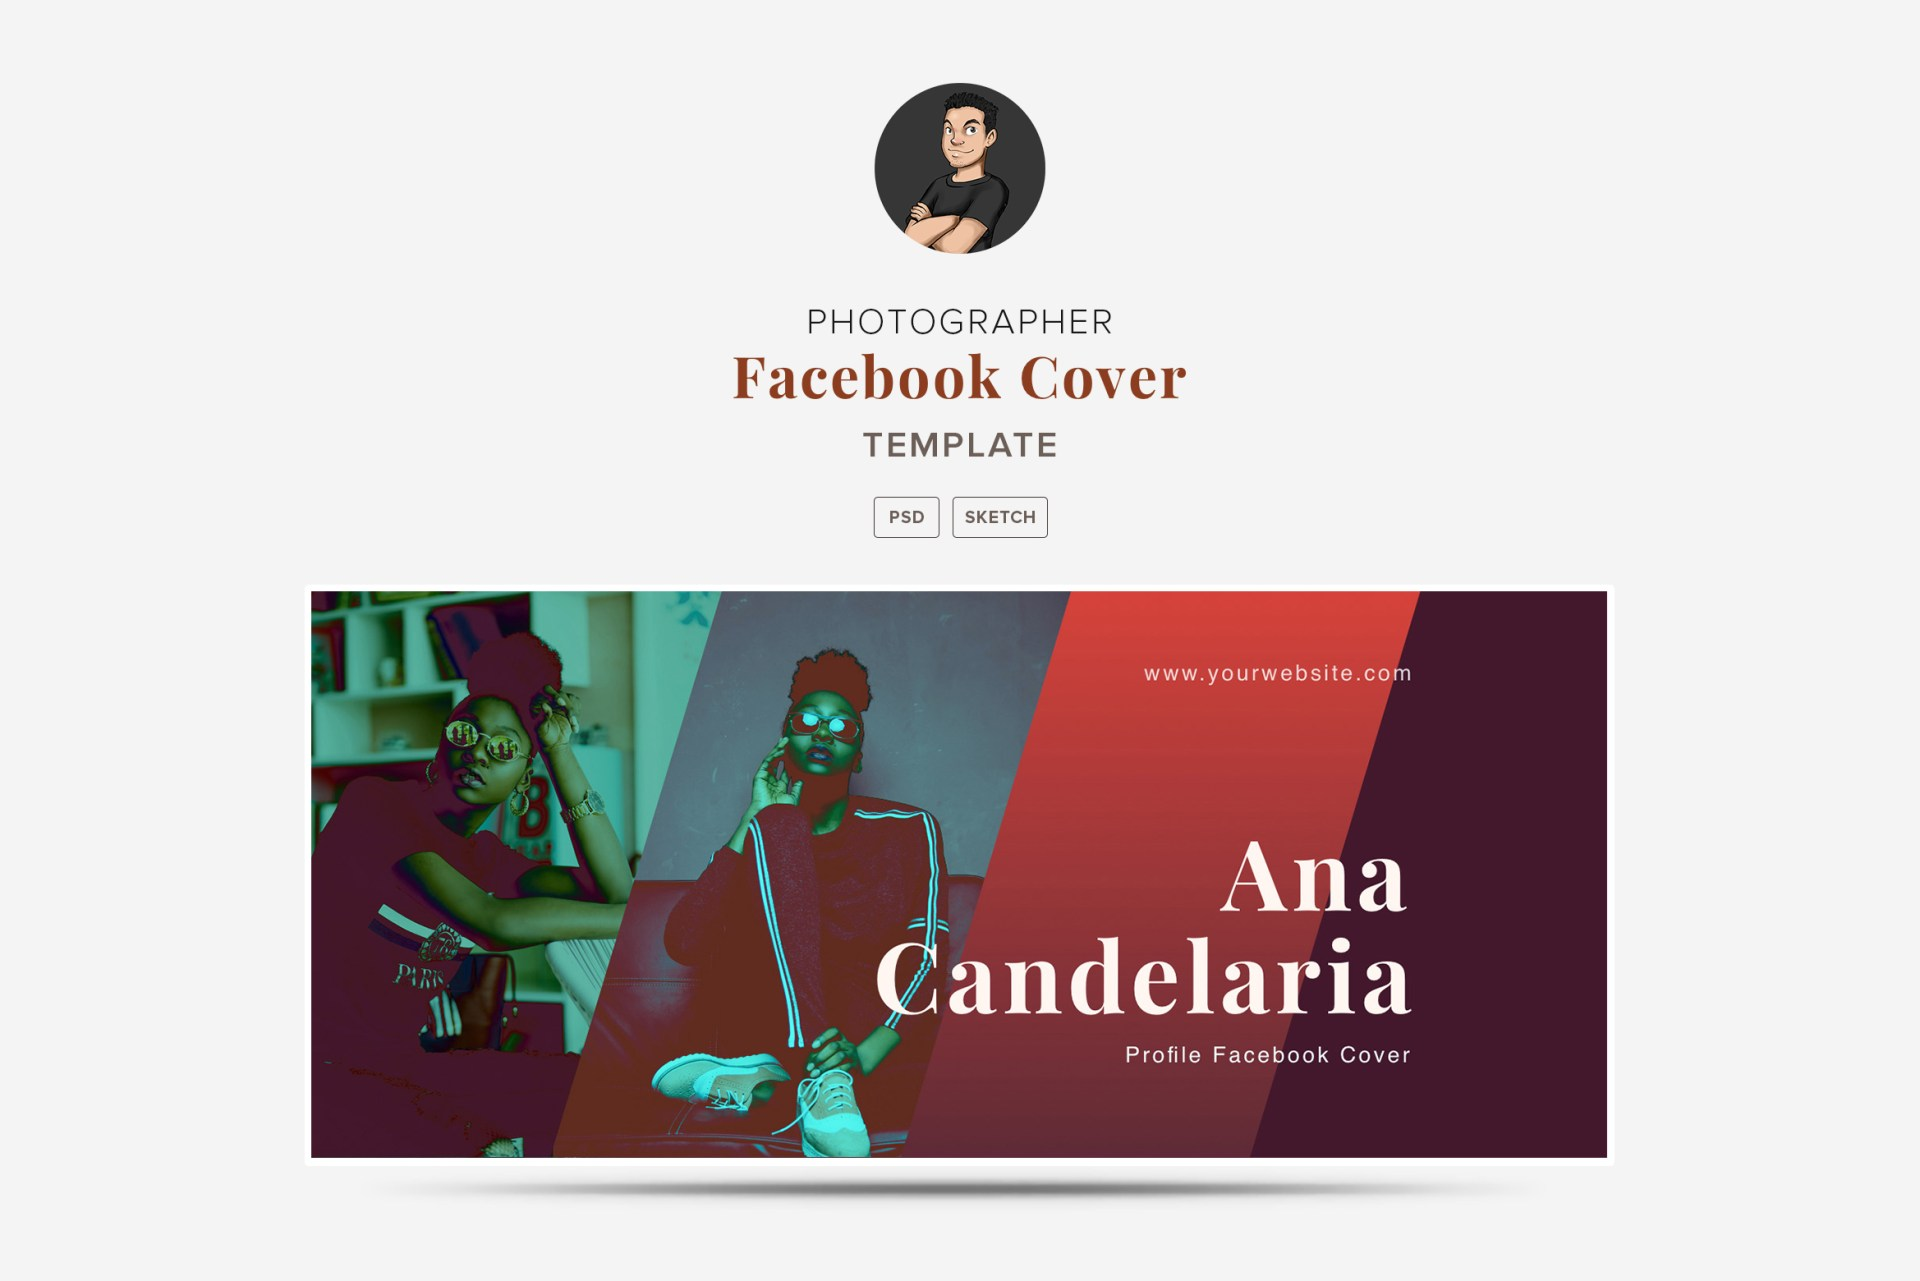 Facebook Cover Template for Photoshop & Sketch